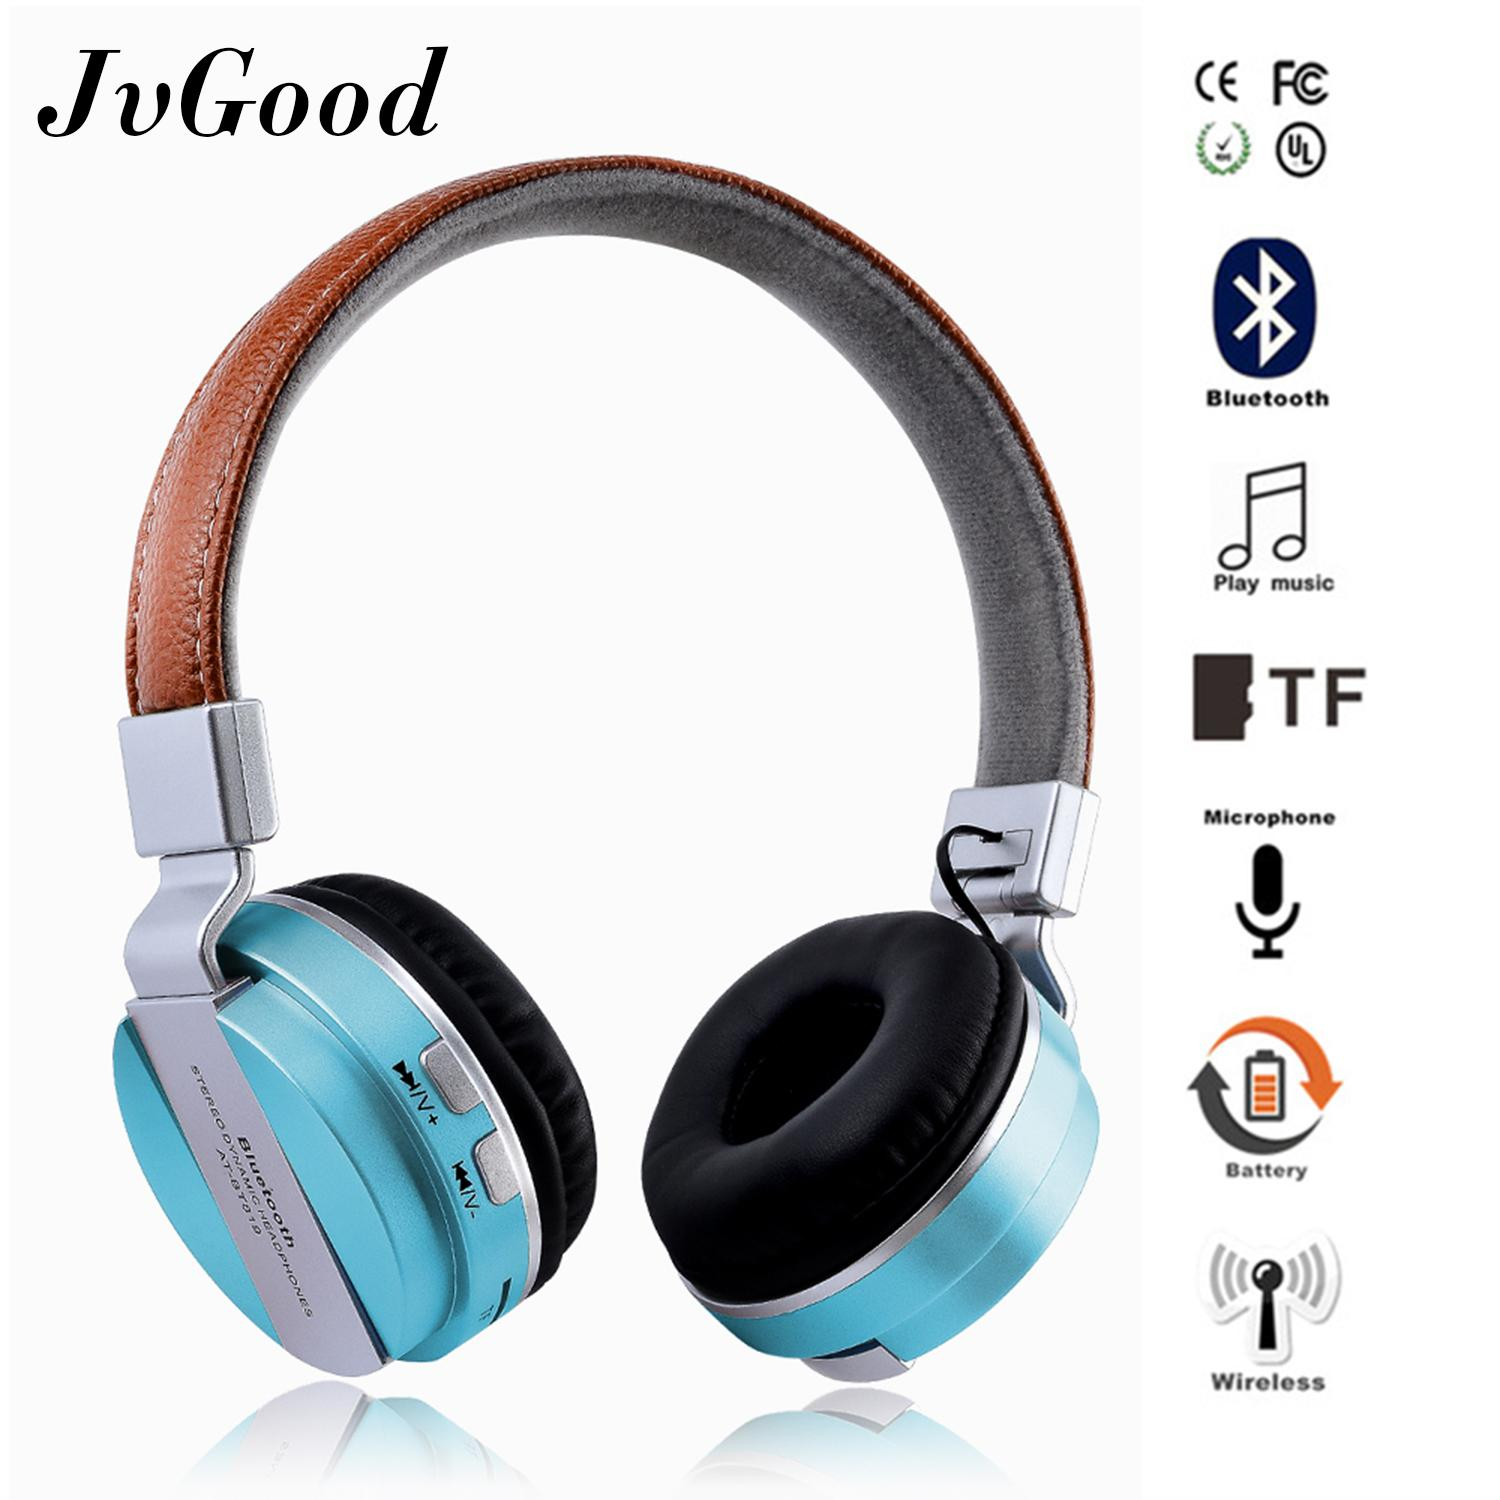 Buy Sell Cheapest Headset Sport Wireless Best Quality Product Unique Bluetooth By6 Handsfree Earphone Putih Jvgood Headphone Foldable Leather With Fm Radio Aux Tf Card Mp3